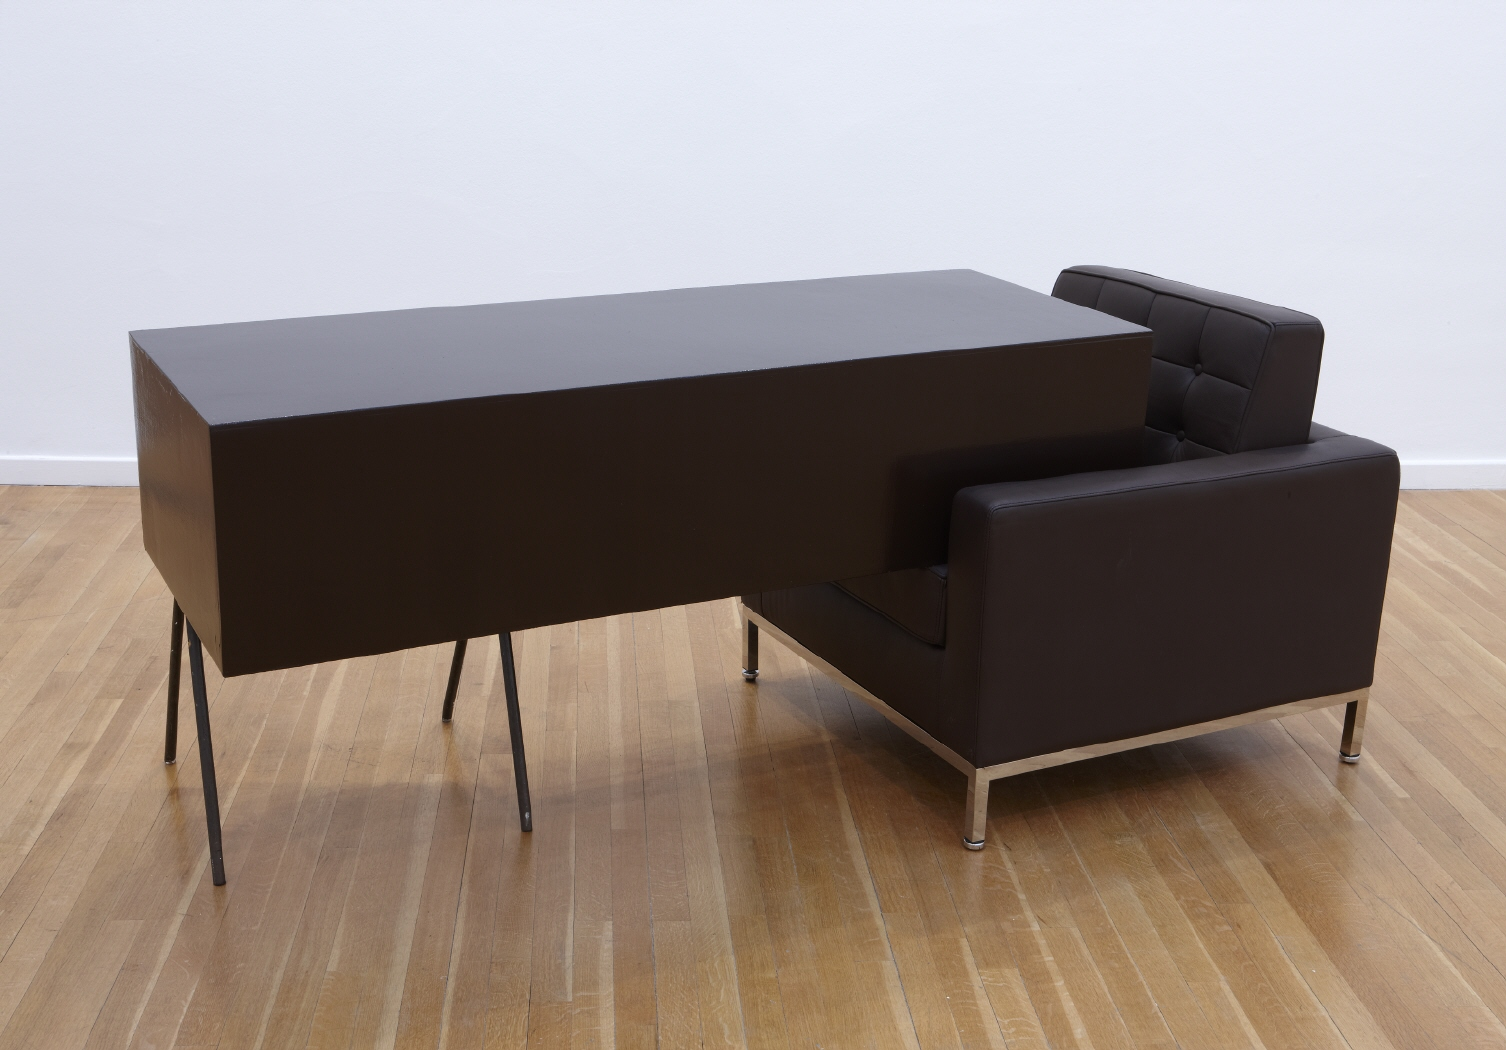 Transfer with arm-chair (Brown), 2010